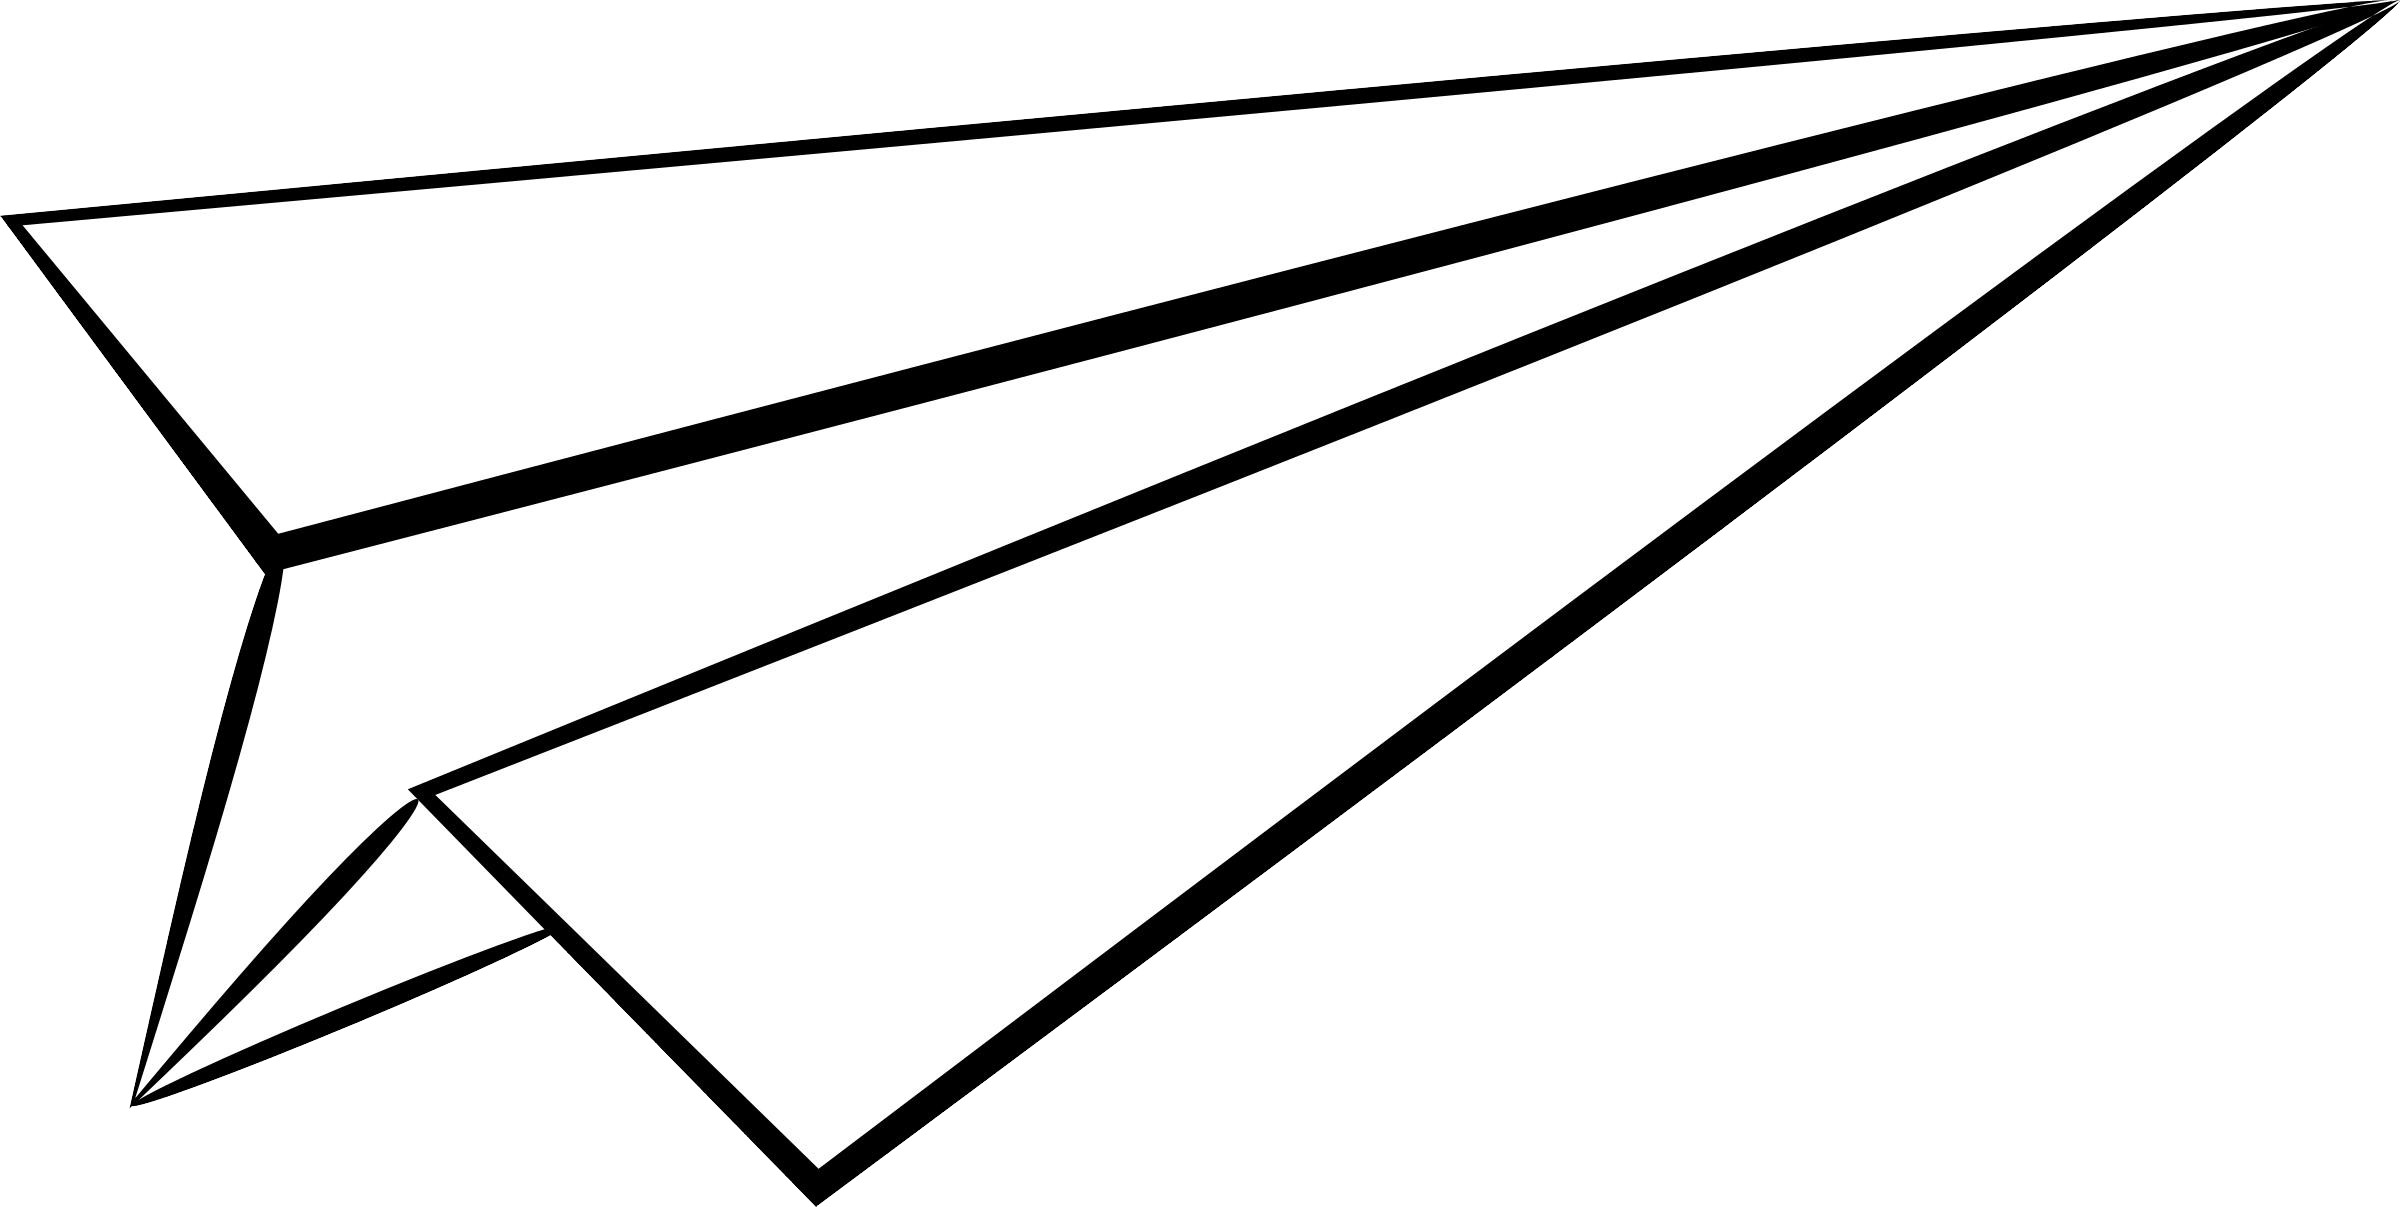 Paper Airplane Clipart Paper Airplane Line Drawing Png